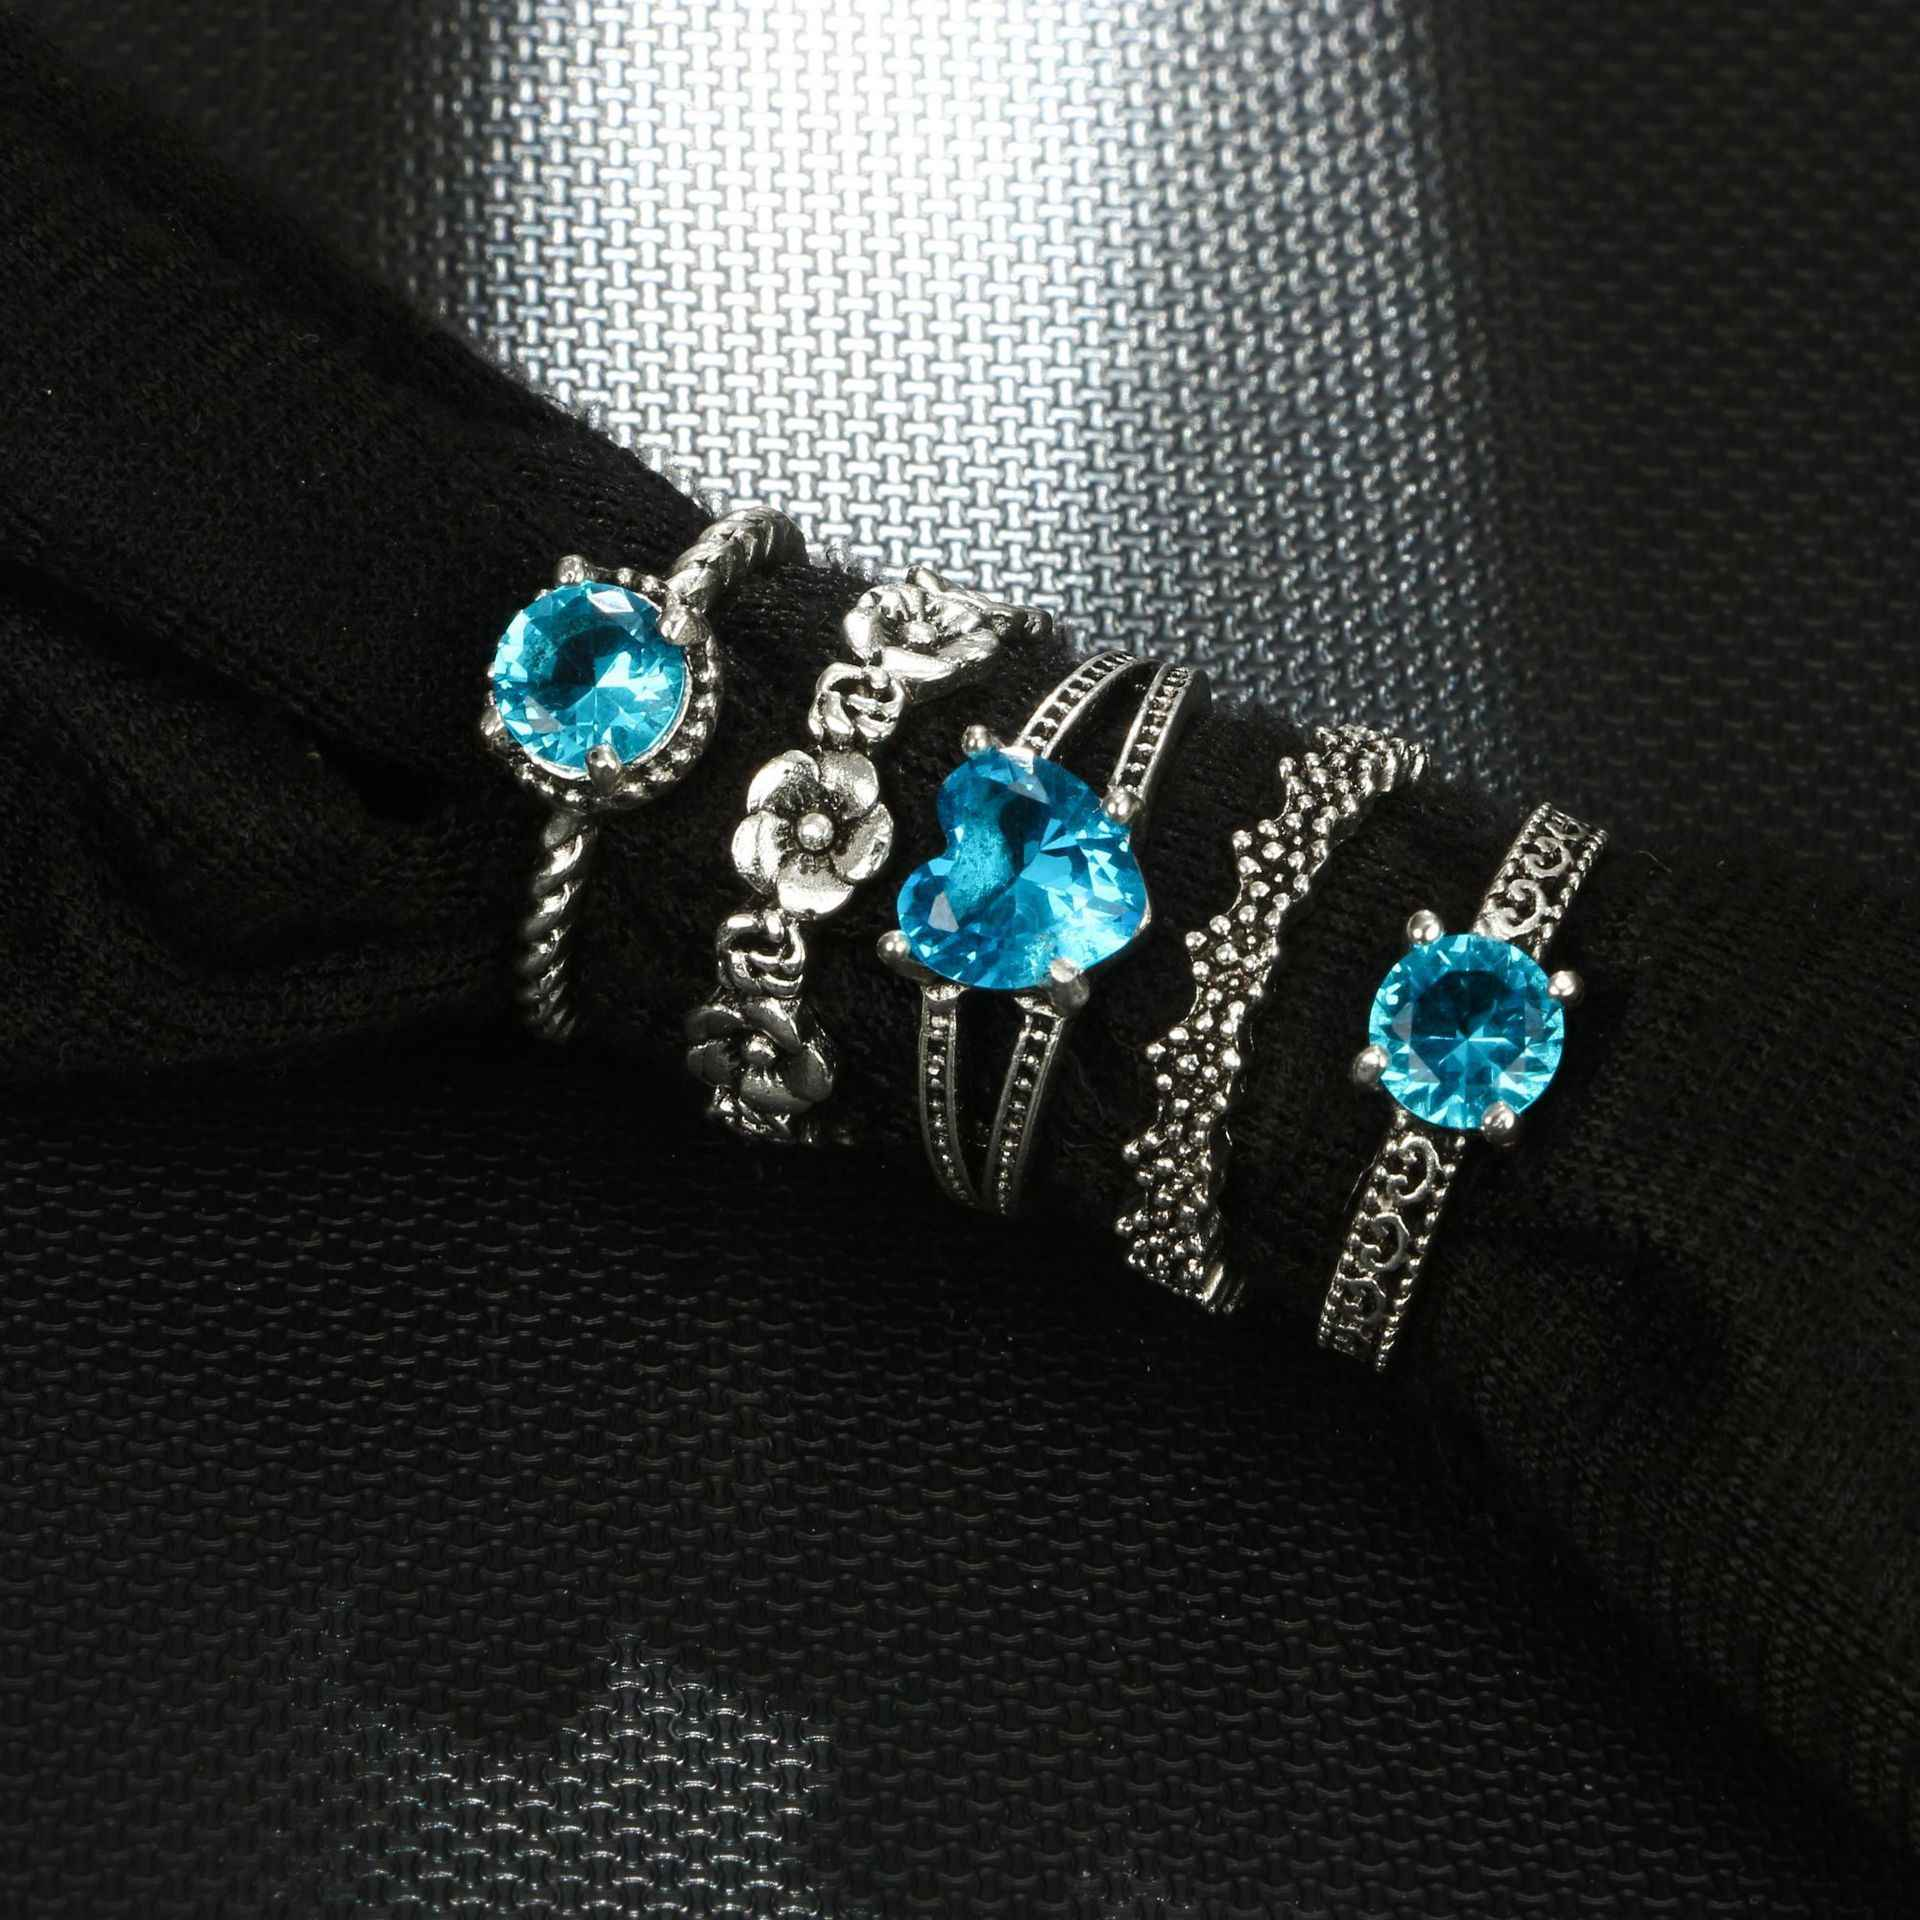 1 Set Ocean Blue Vintage Knuckle Rings for Women Boho Geometric Flower Crystal Ring Set Bohemian Finger Jewelry